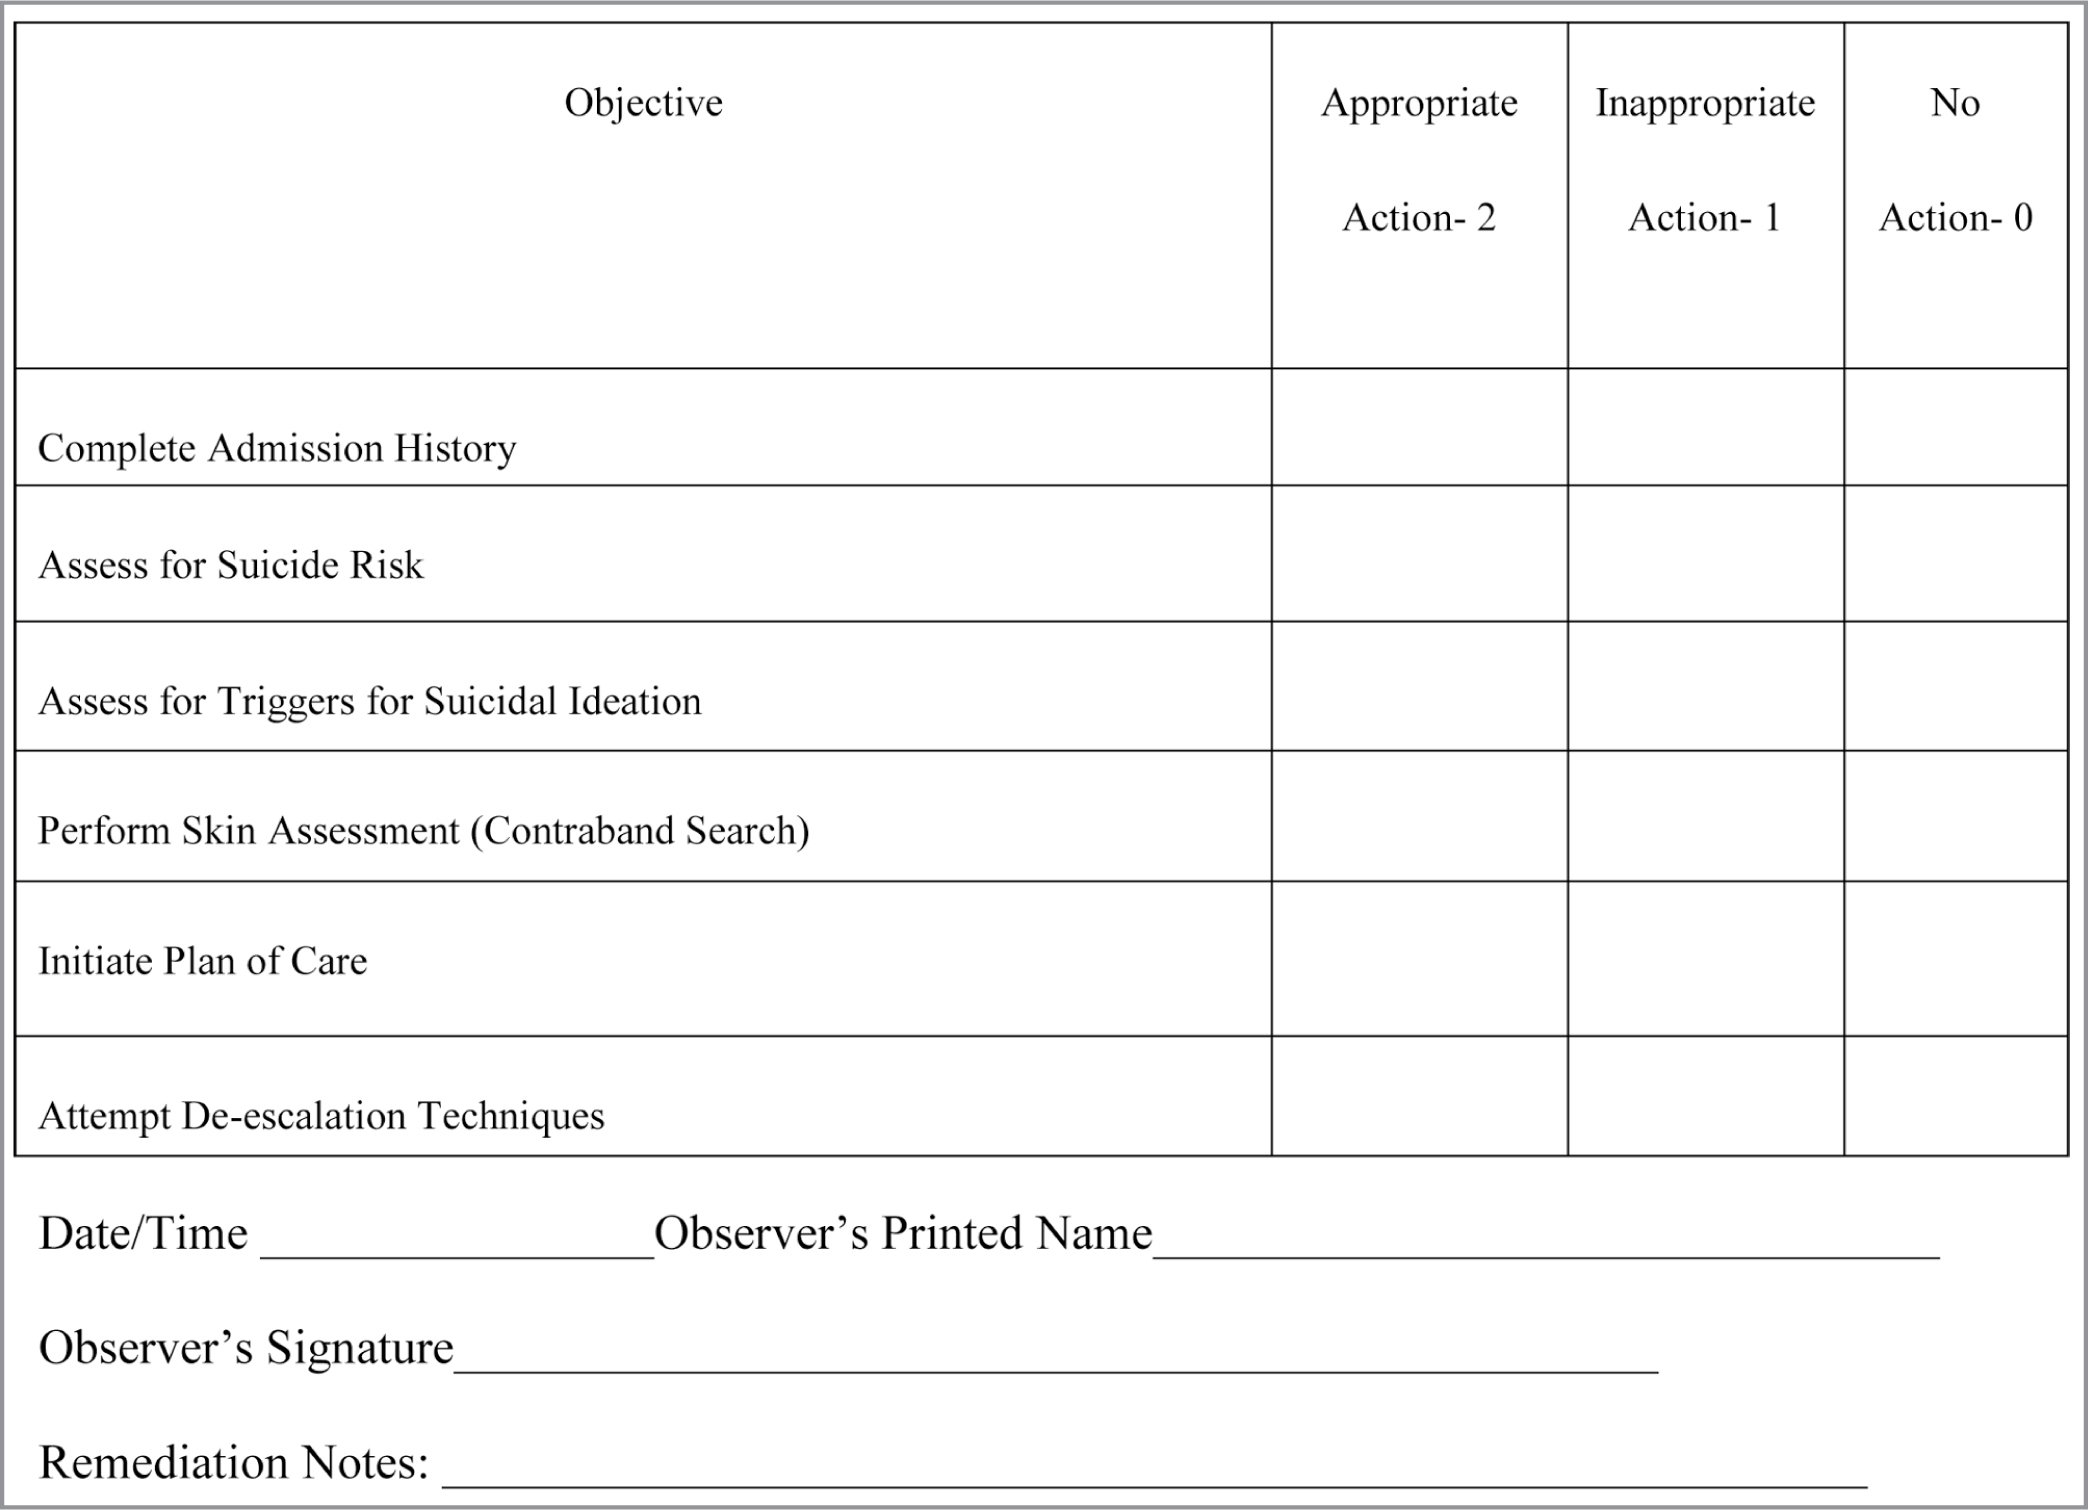 Competency grid for mental health standardized patient with major depression, suicide attempt scenario. Data from Kirkpatrick (1995).